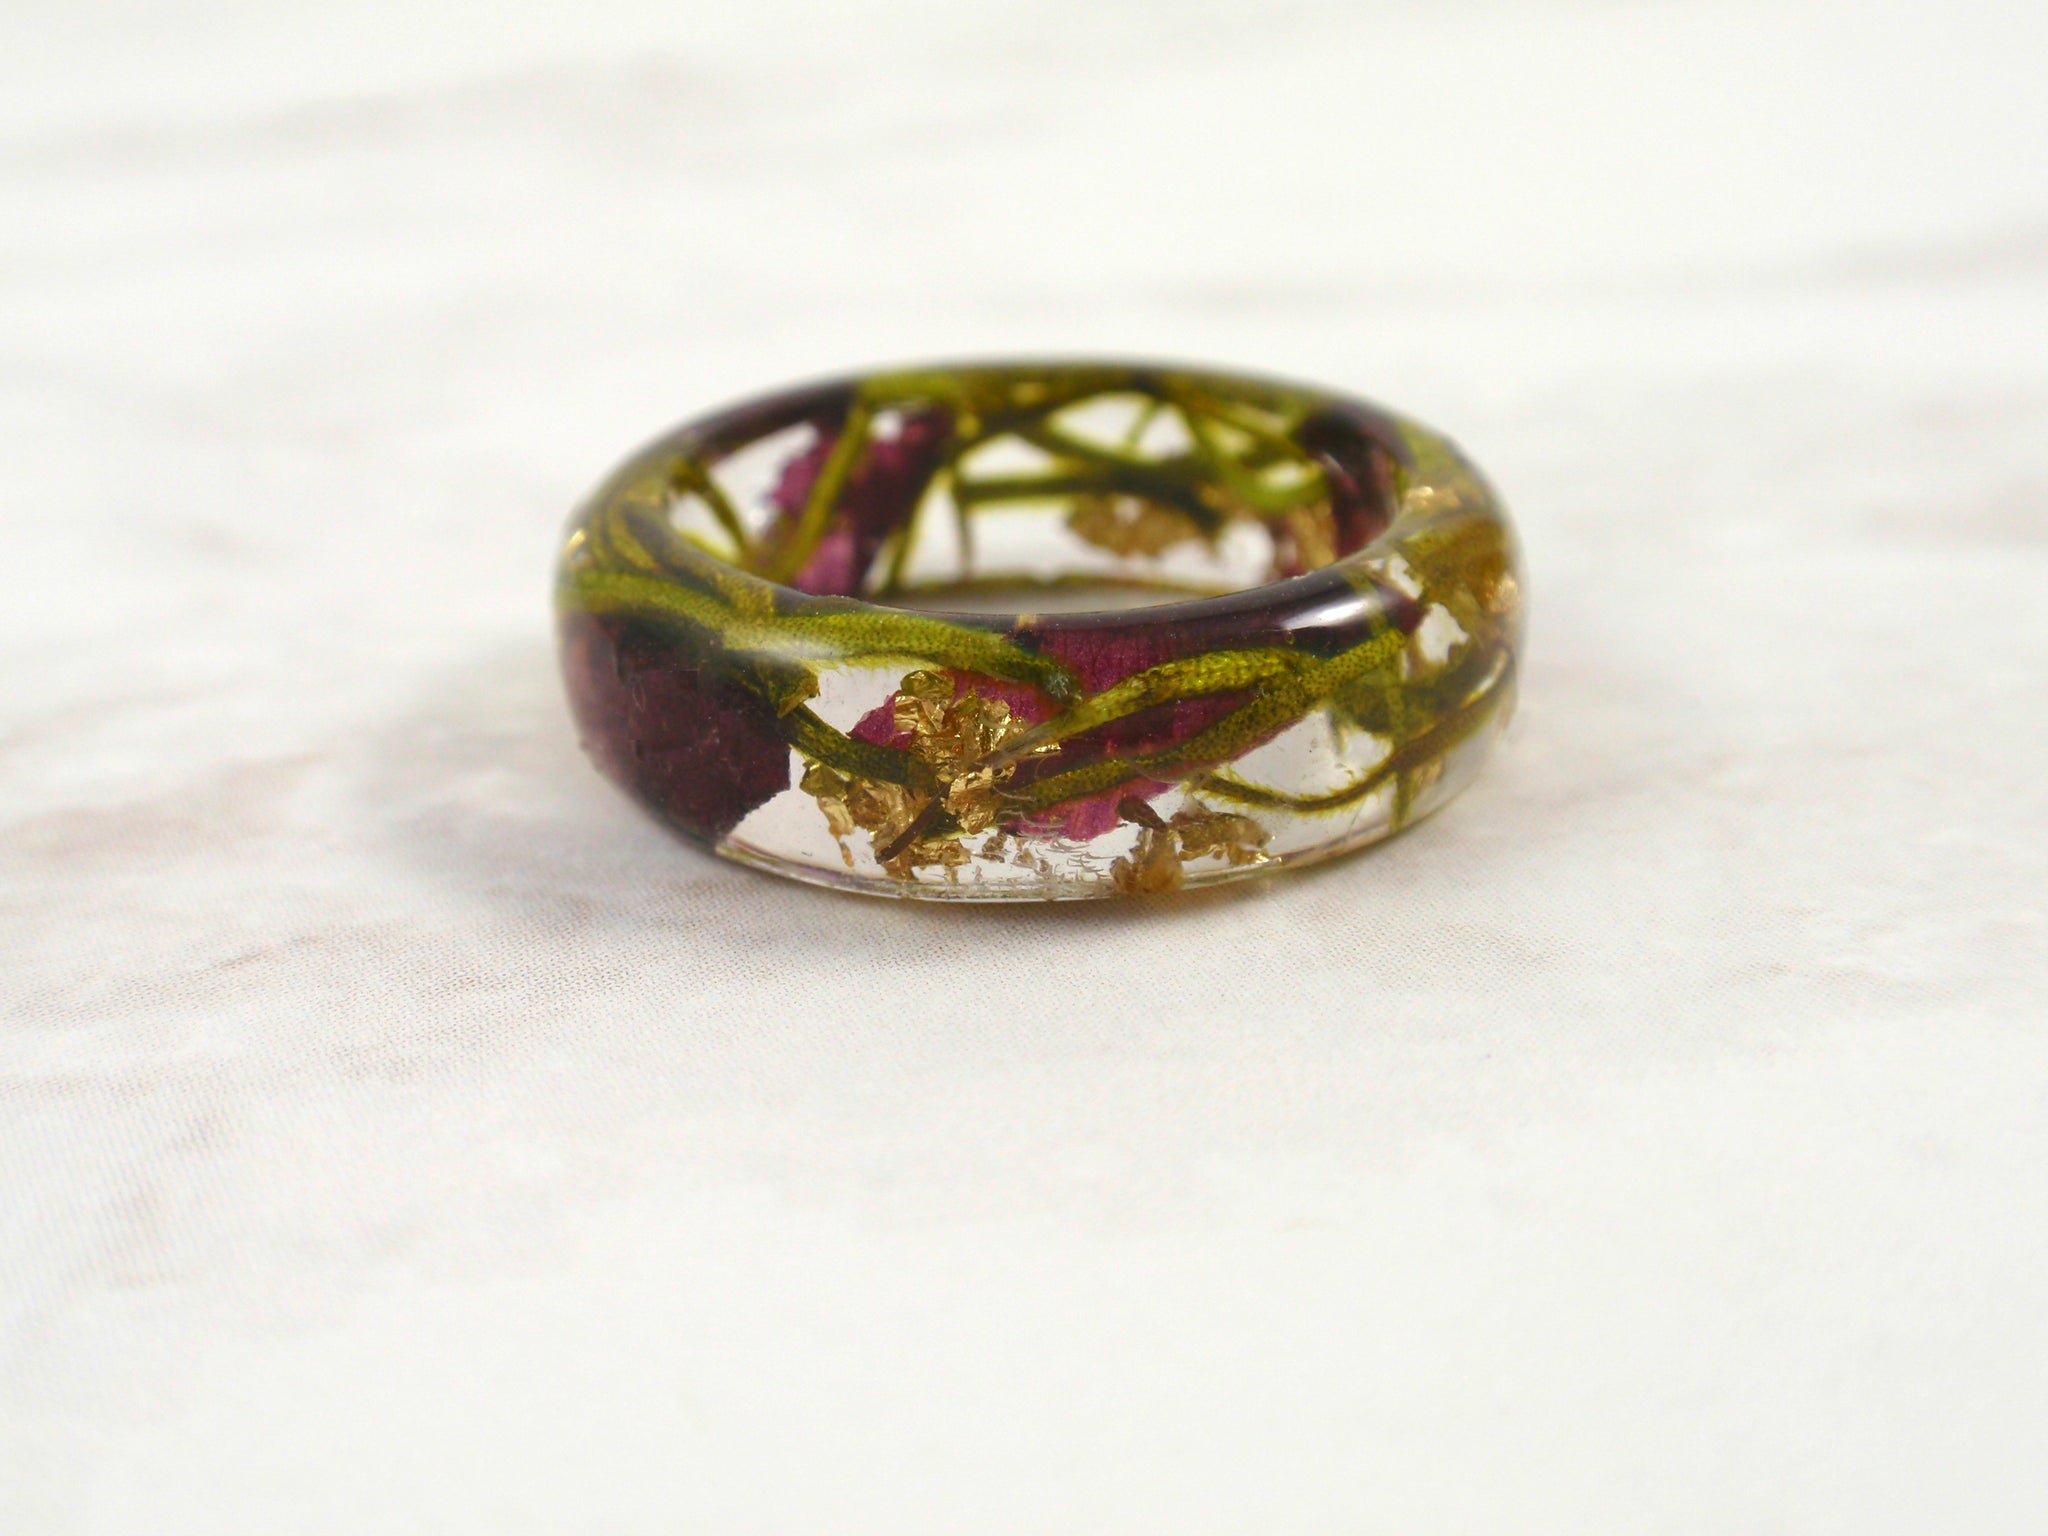 Handmade resin ring with real rose petals